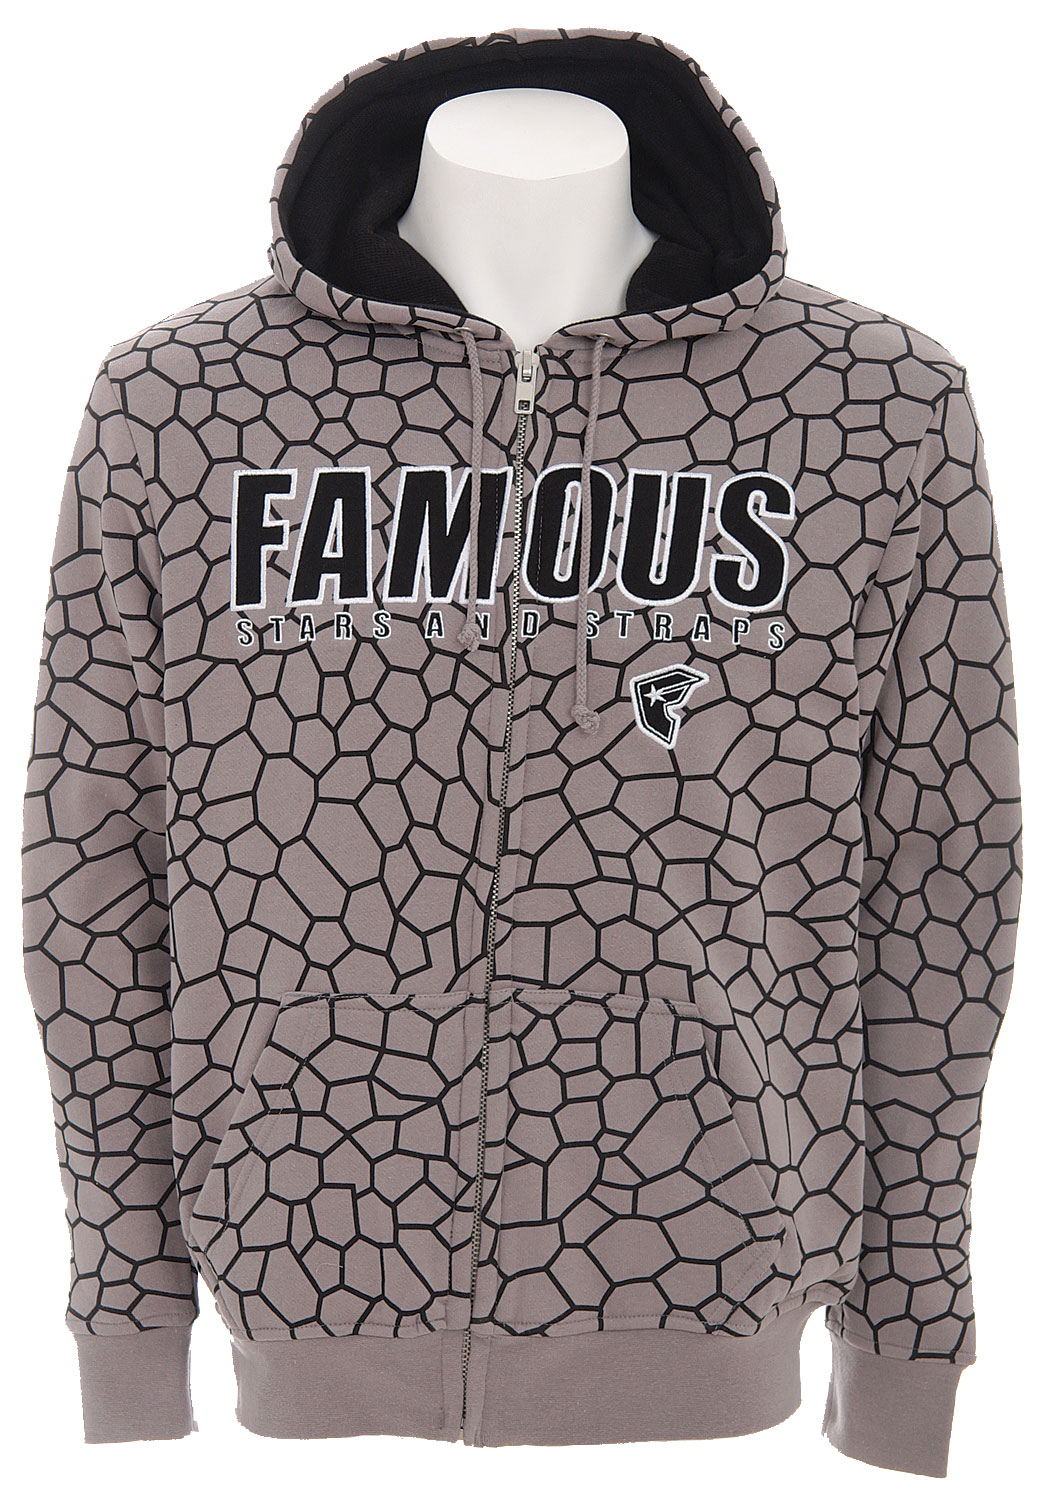 The Famous Stars Black Widow Hoodie. - 80% Cotton, 20% Polyester / 550Gram Heavy Weight Fleece with Thermal Lining - $39.95